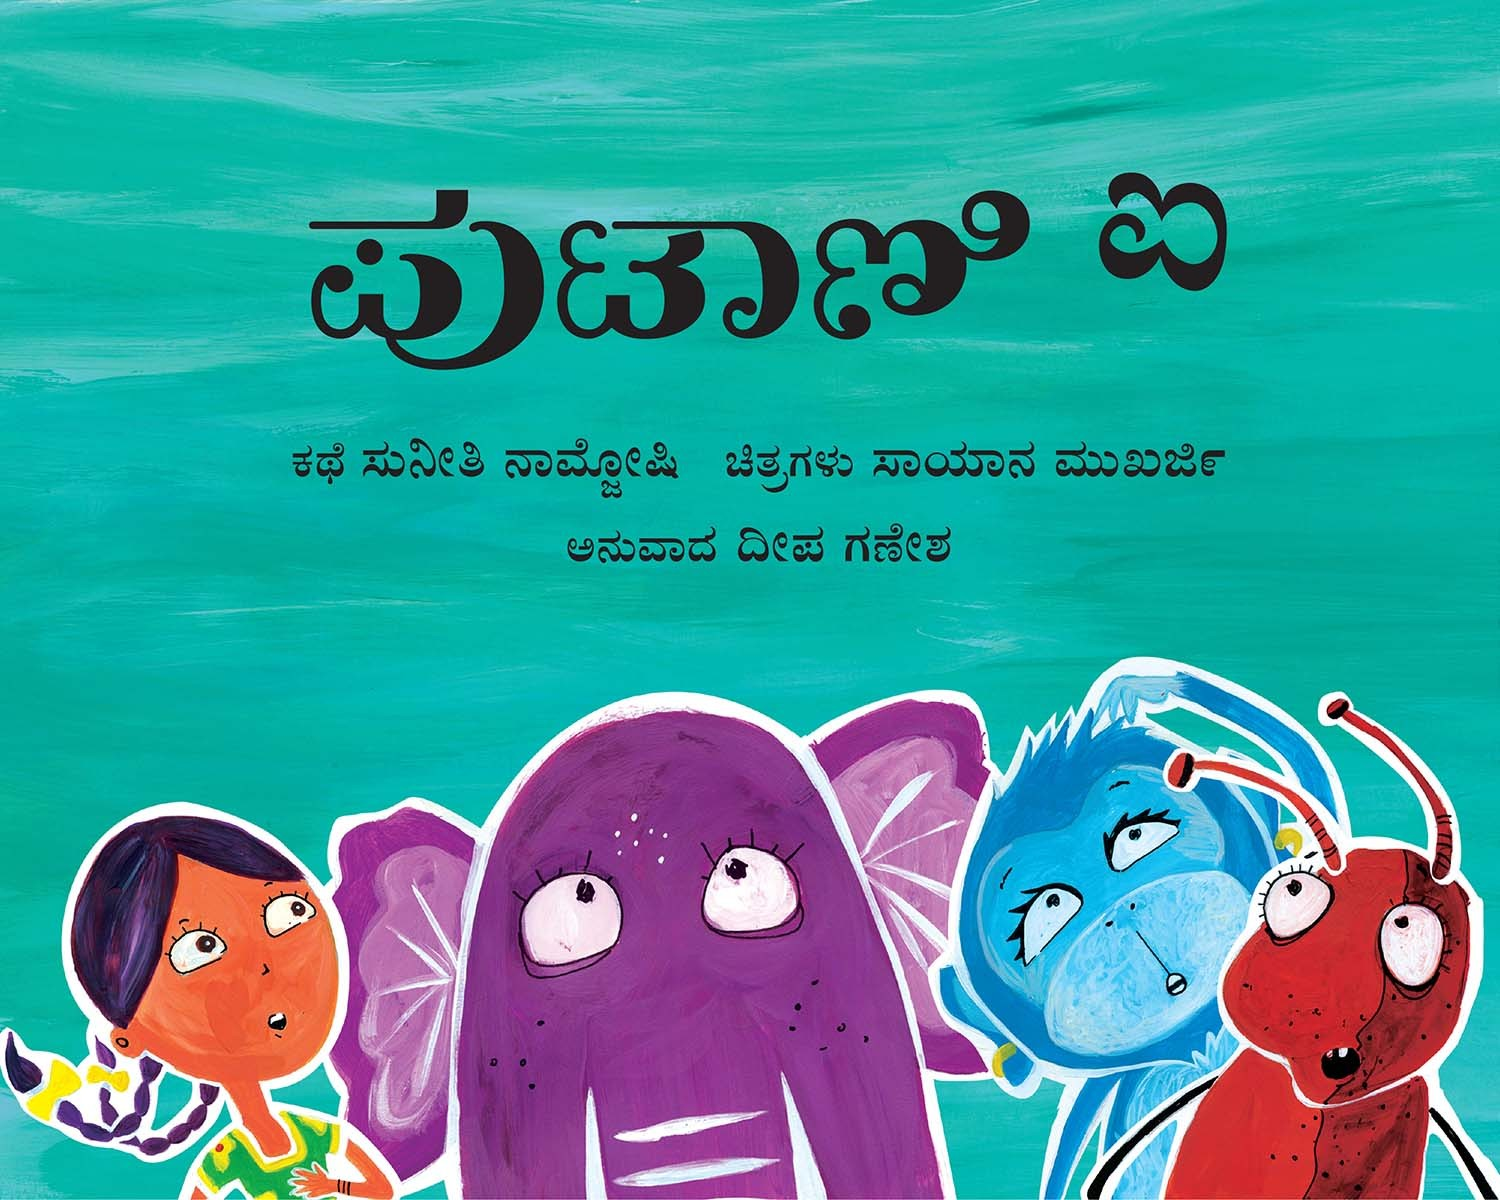 Little i/Puttani Aii (Kannada)